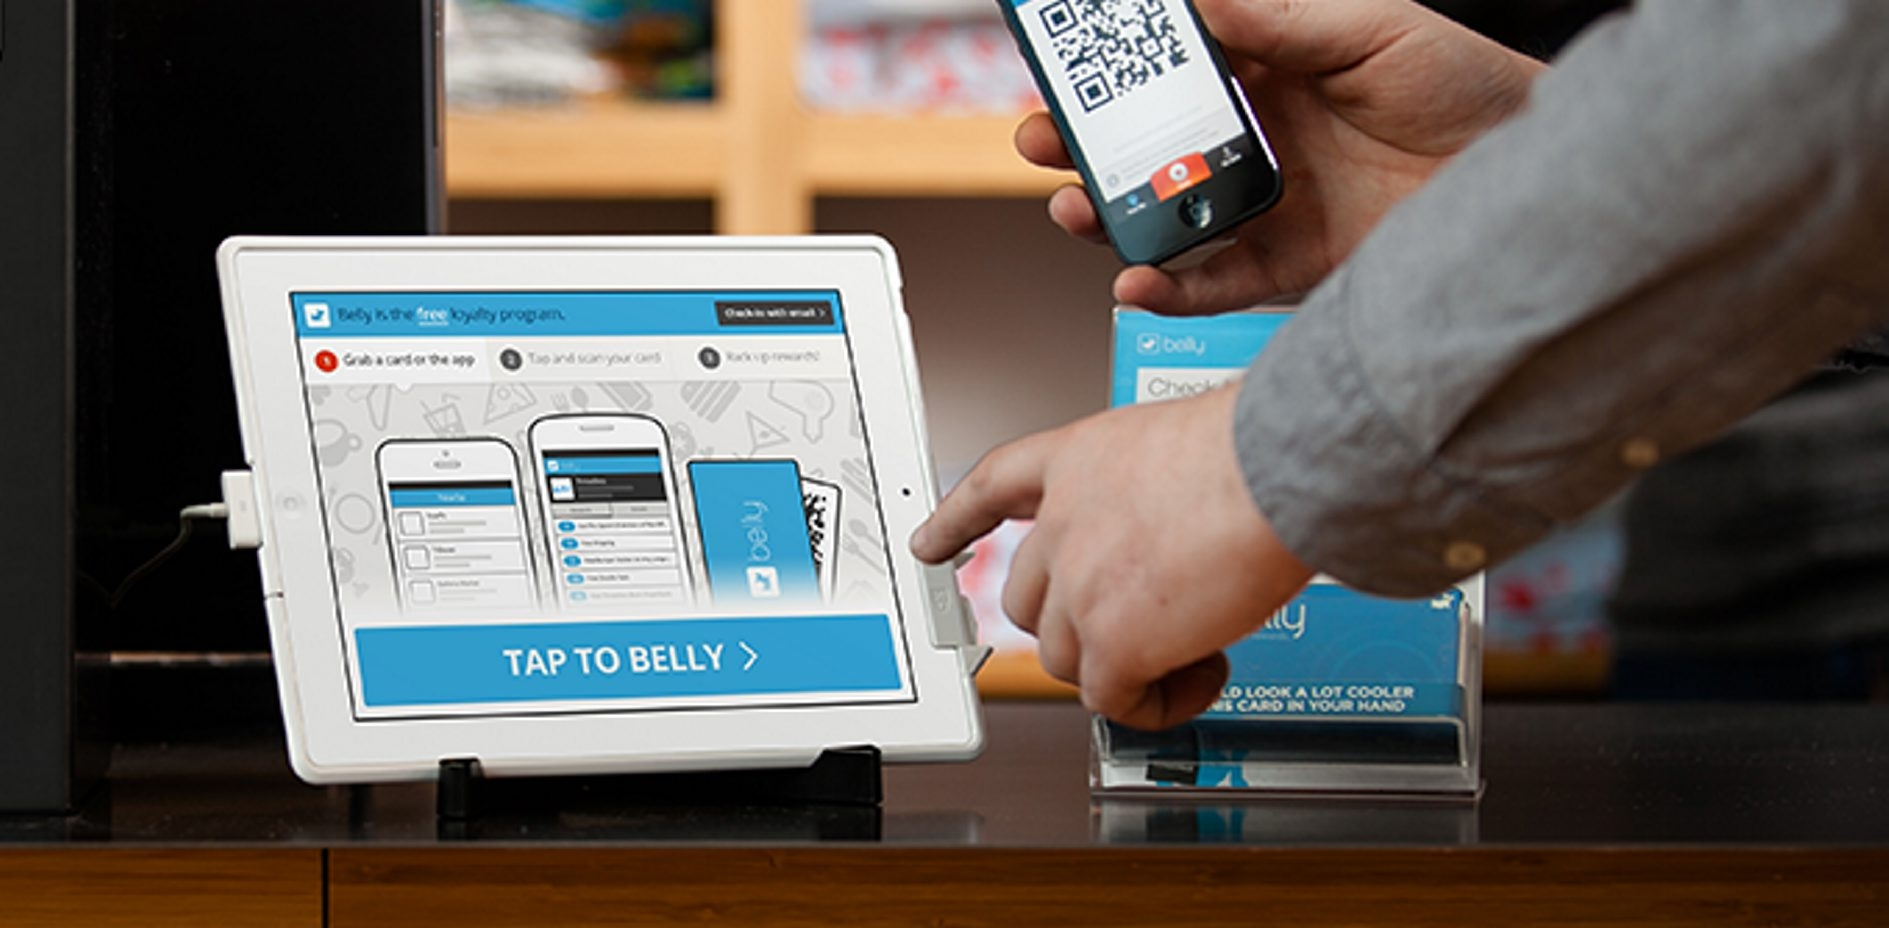 Tap to belly. A customer uses the belly rewards iPad program, compatible with smartphone or key fob.